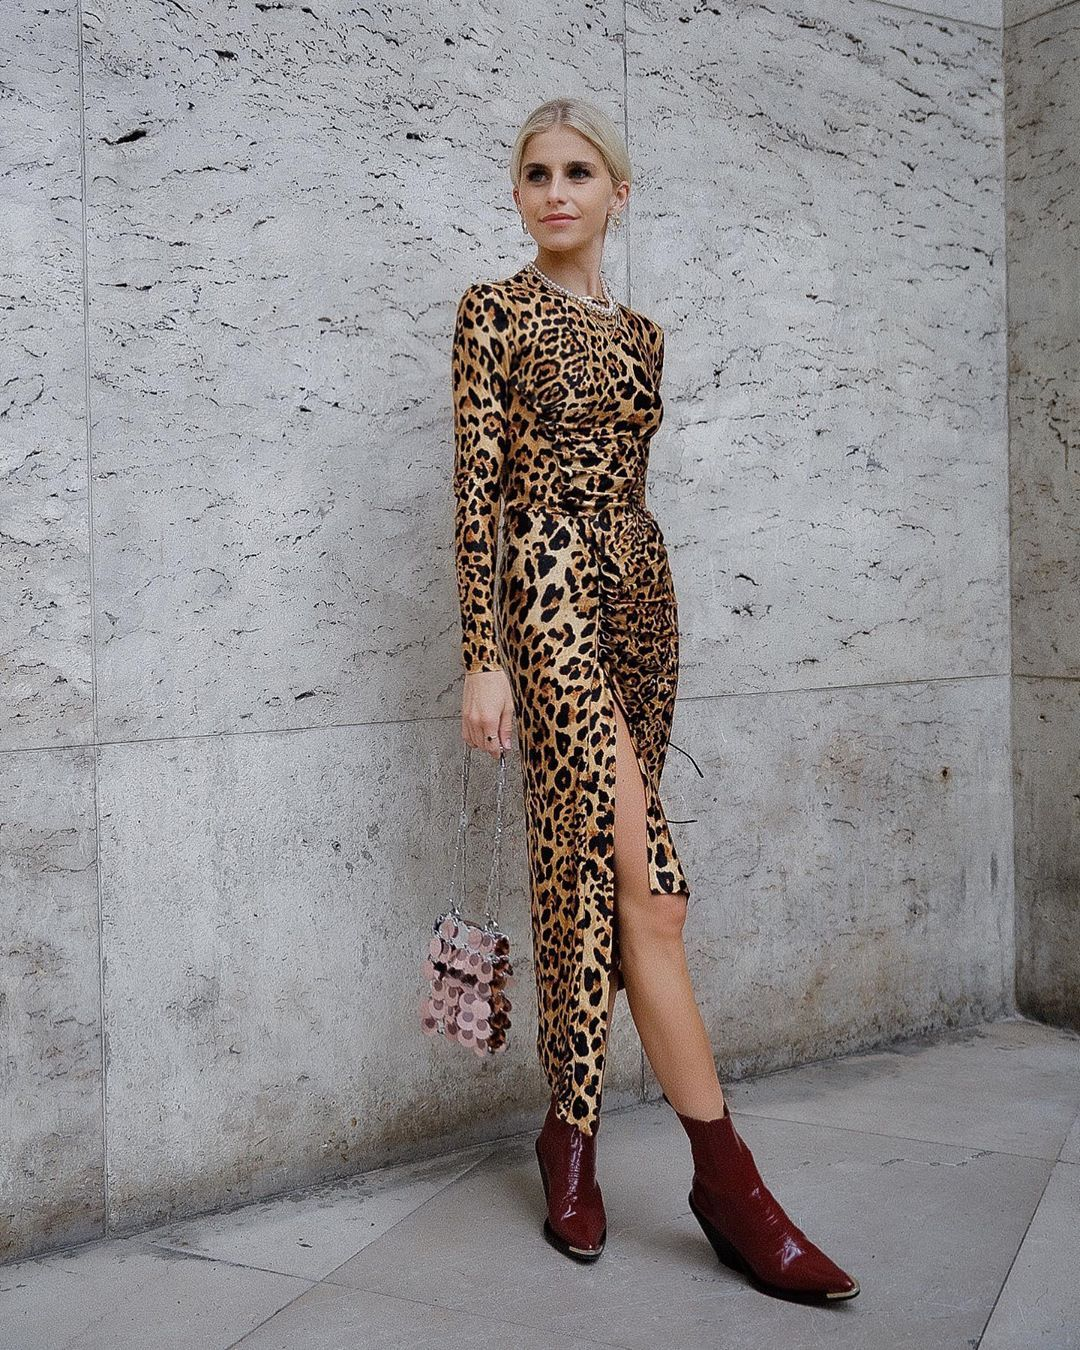 caro-daur-paco-rabanne-leopard-print-stretch-top-skirt-paris-fashion-week